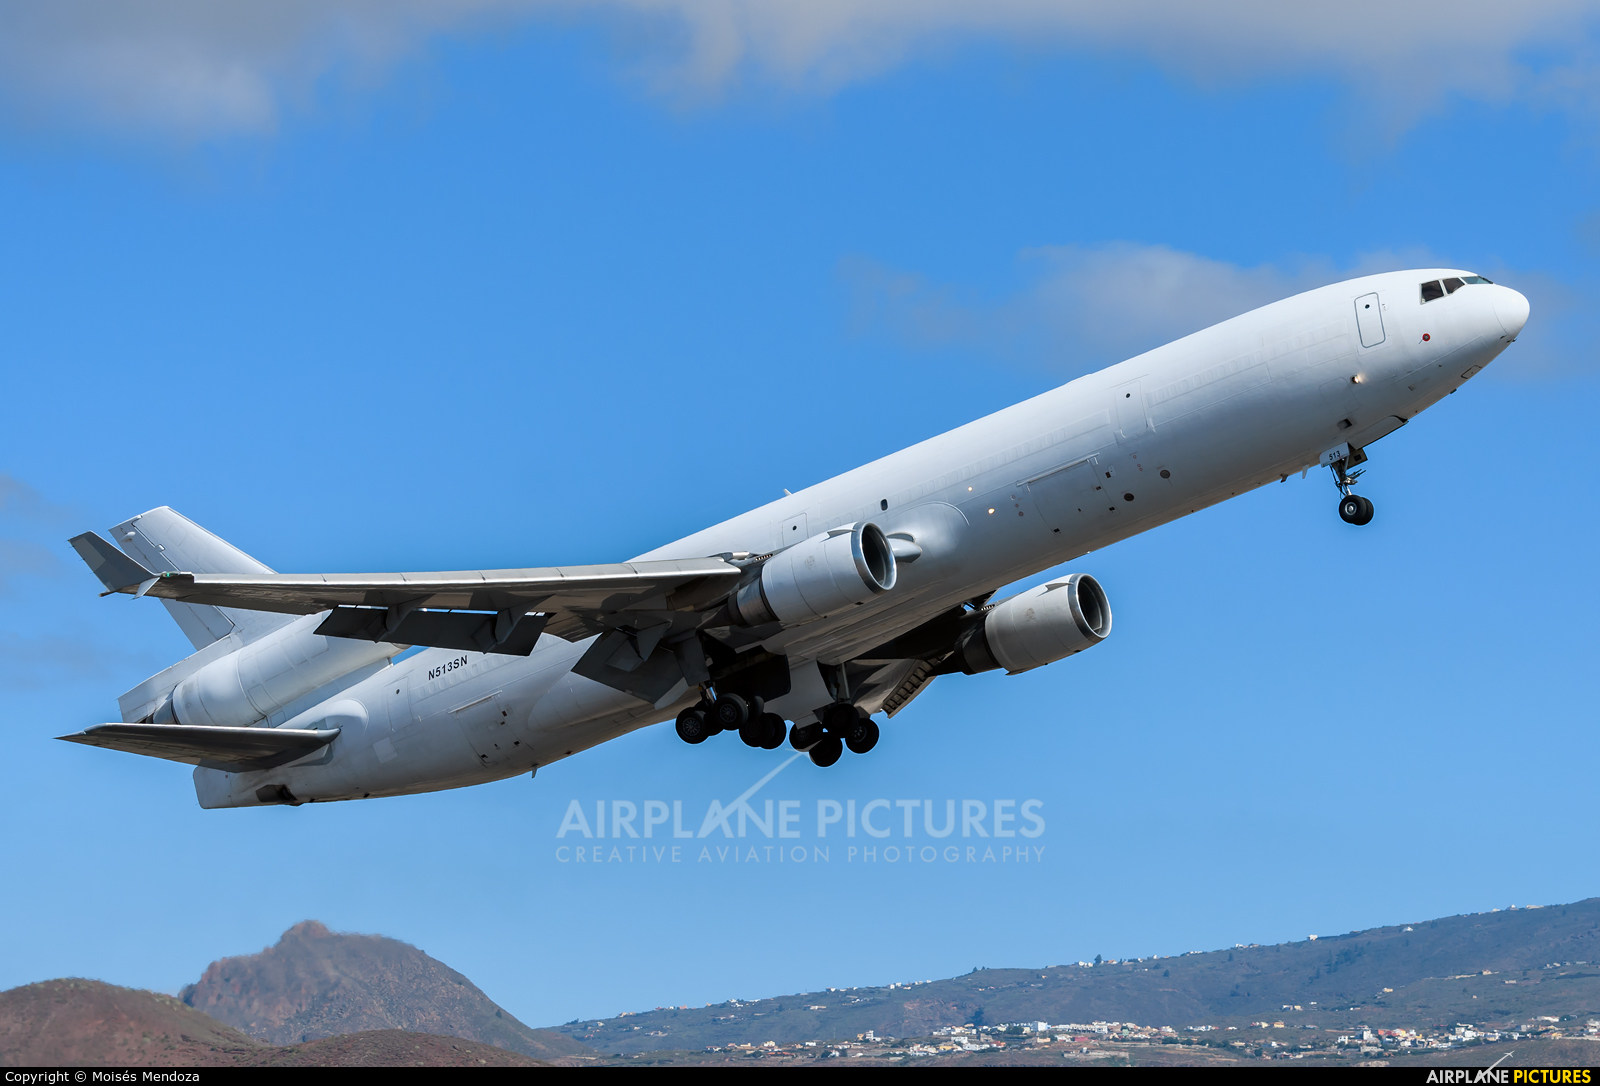 Western Global Airlines N513SN aircraft at Tenerife Sur - Reina Sofia